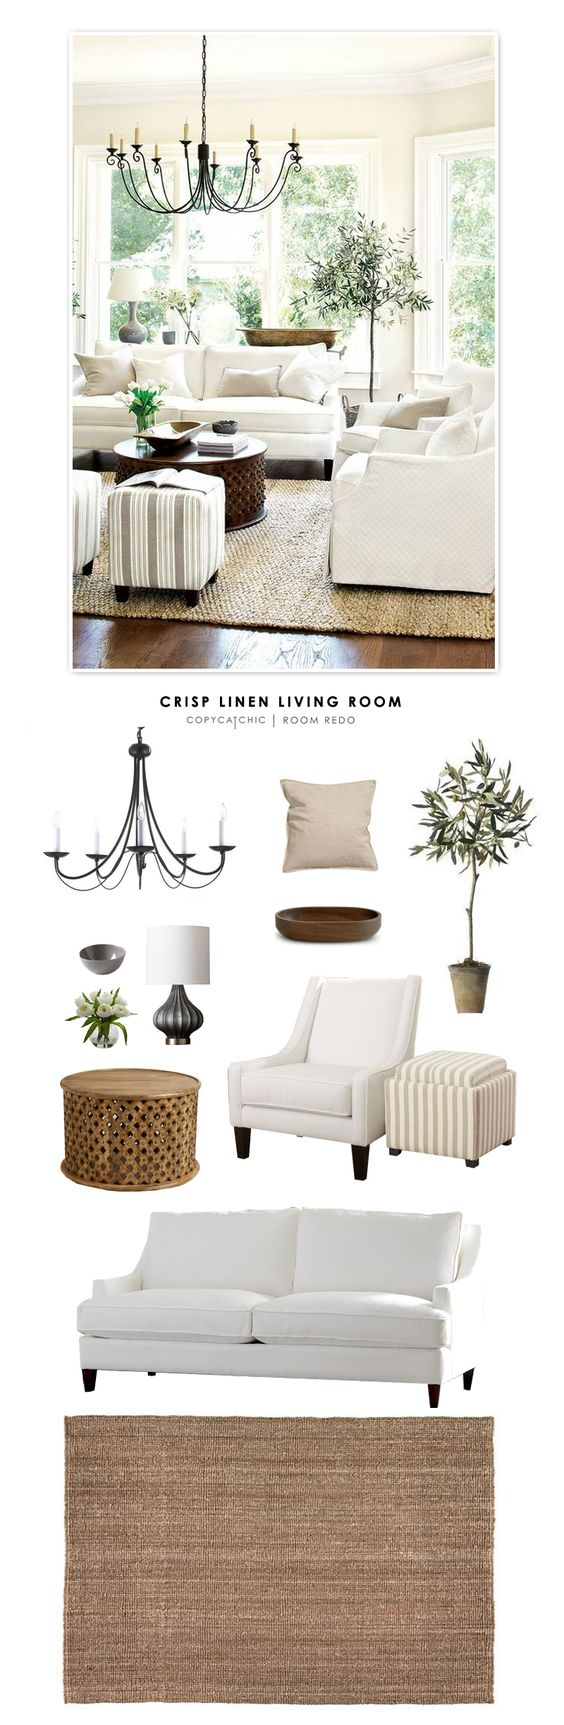 TOTAL | $2,960    SOFA $1,141 | ACCENT CHAIRS $434 (EA) | OTTOMAN $151 (EA) | COFFEE TABLE $200 | RUG $140 | CHANDELIER $87 | PILLOWS $10 (EA) | WOOD BOWL $50 | LAMP $40 | TULIPS $48 | FAUX OLIVE TREE